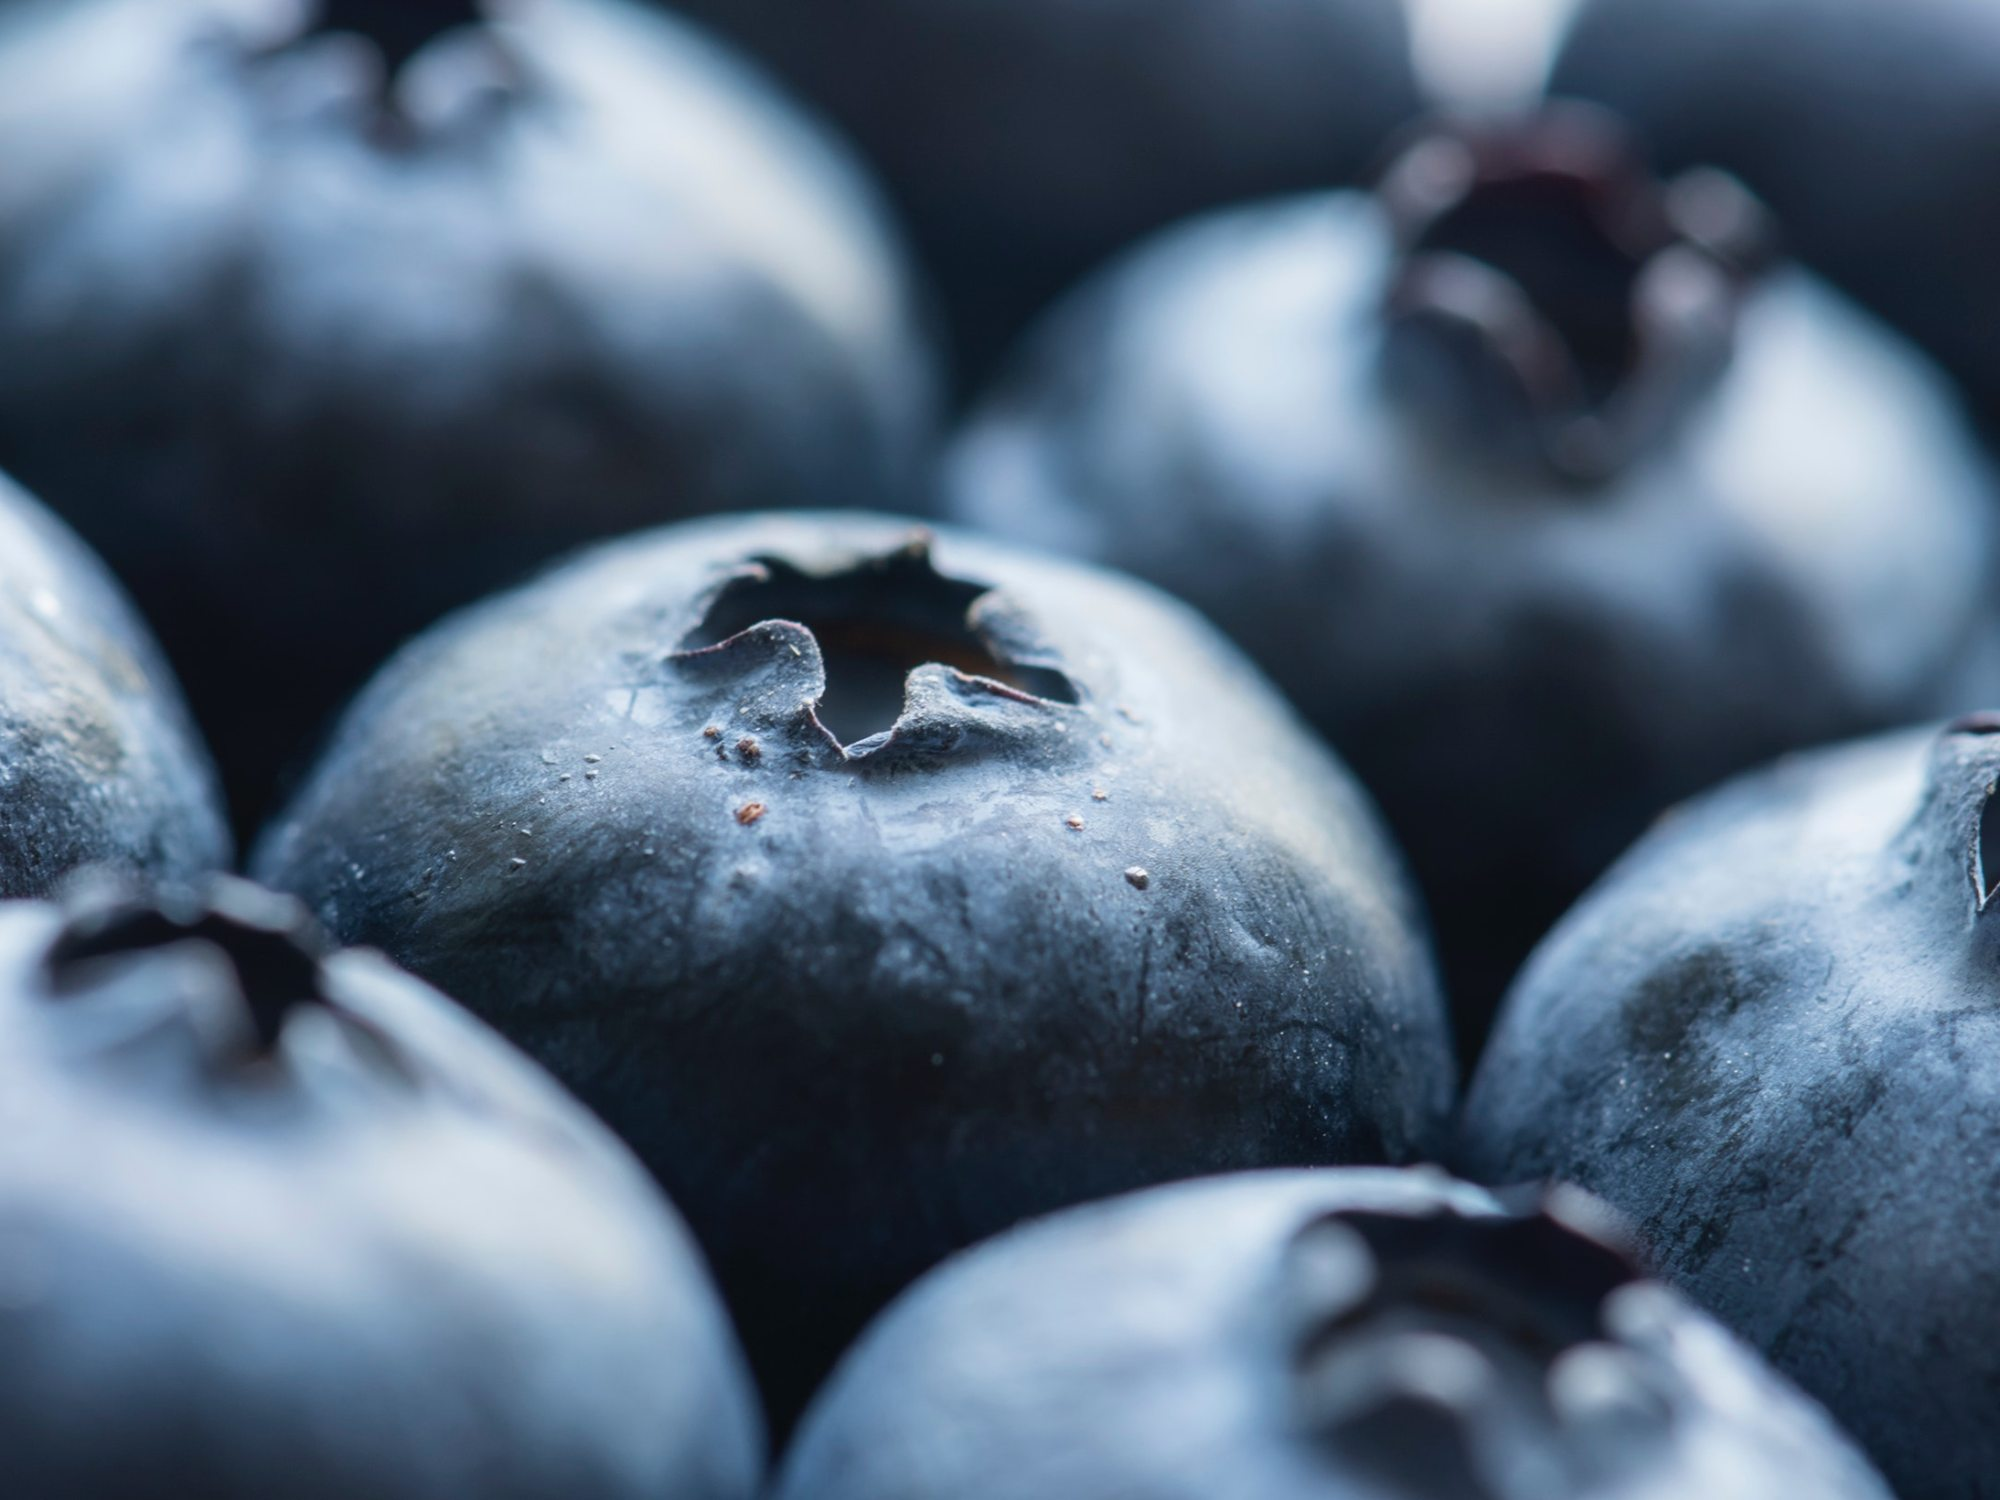 antioxidant-berries-blueberries-afro-glory-mental-health-awareness-week-stress-relief